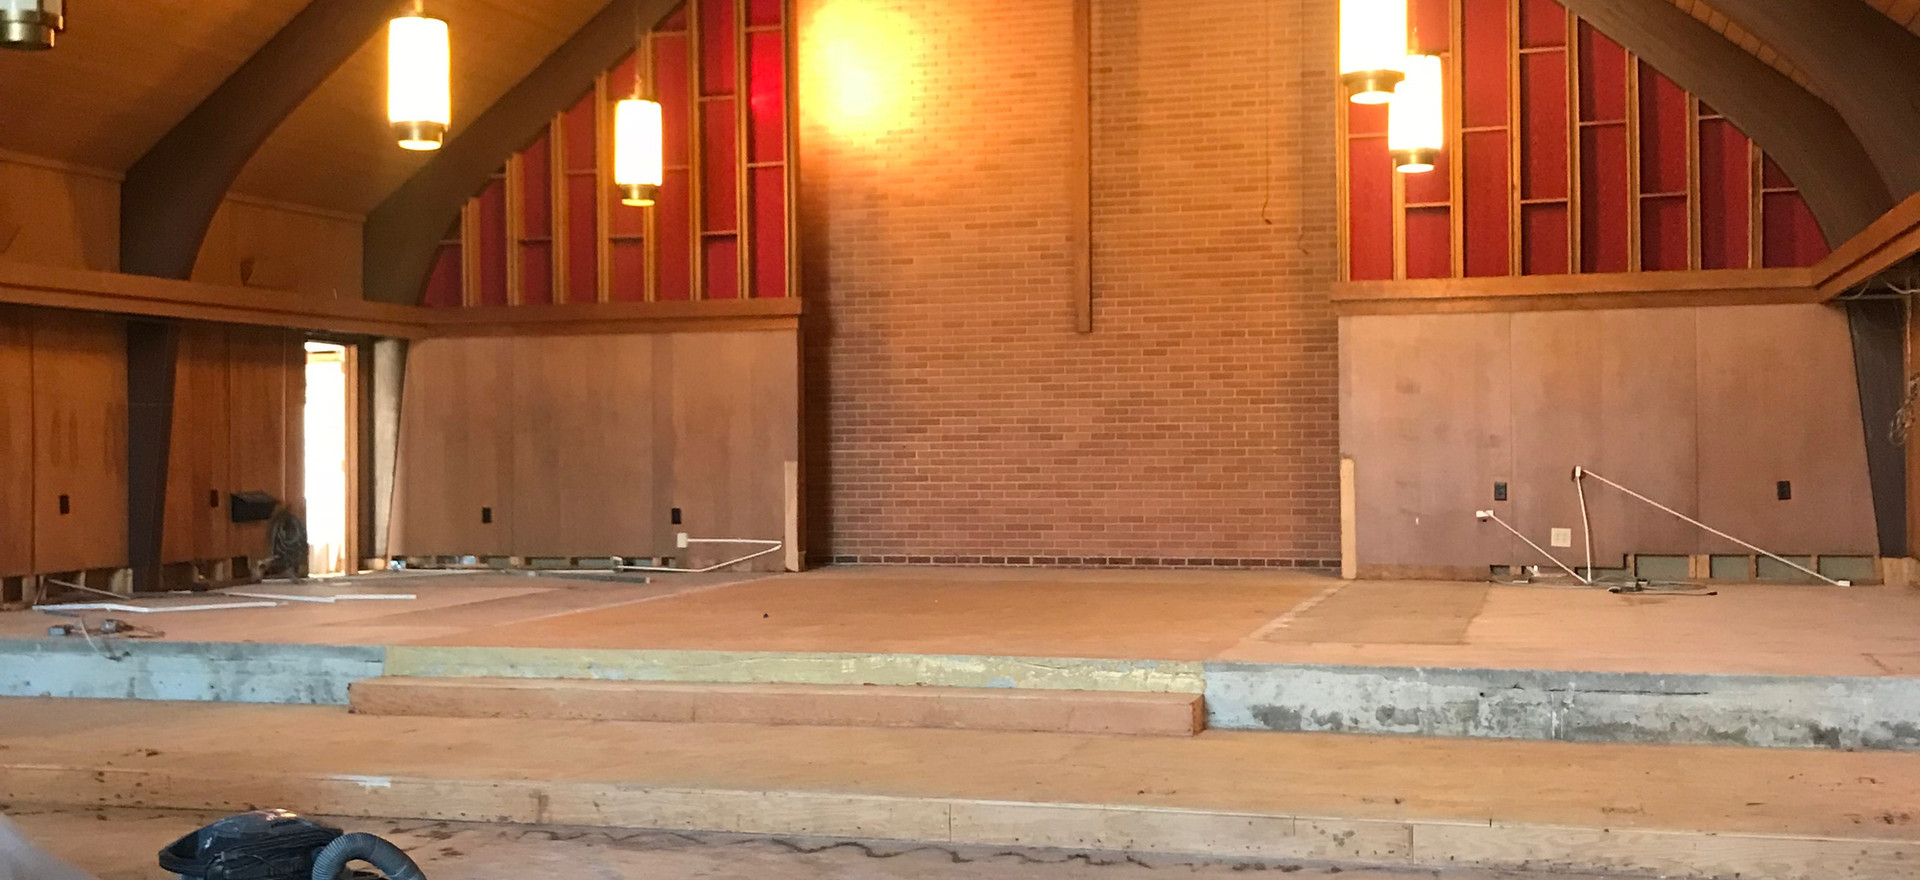 Altar, Lectern, and Pulpit Removal